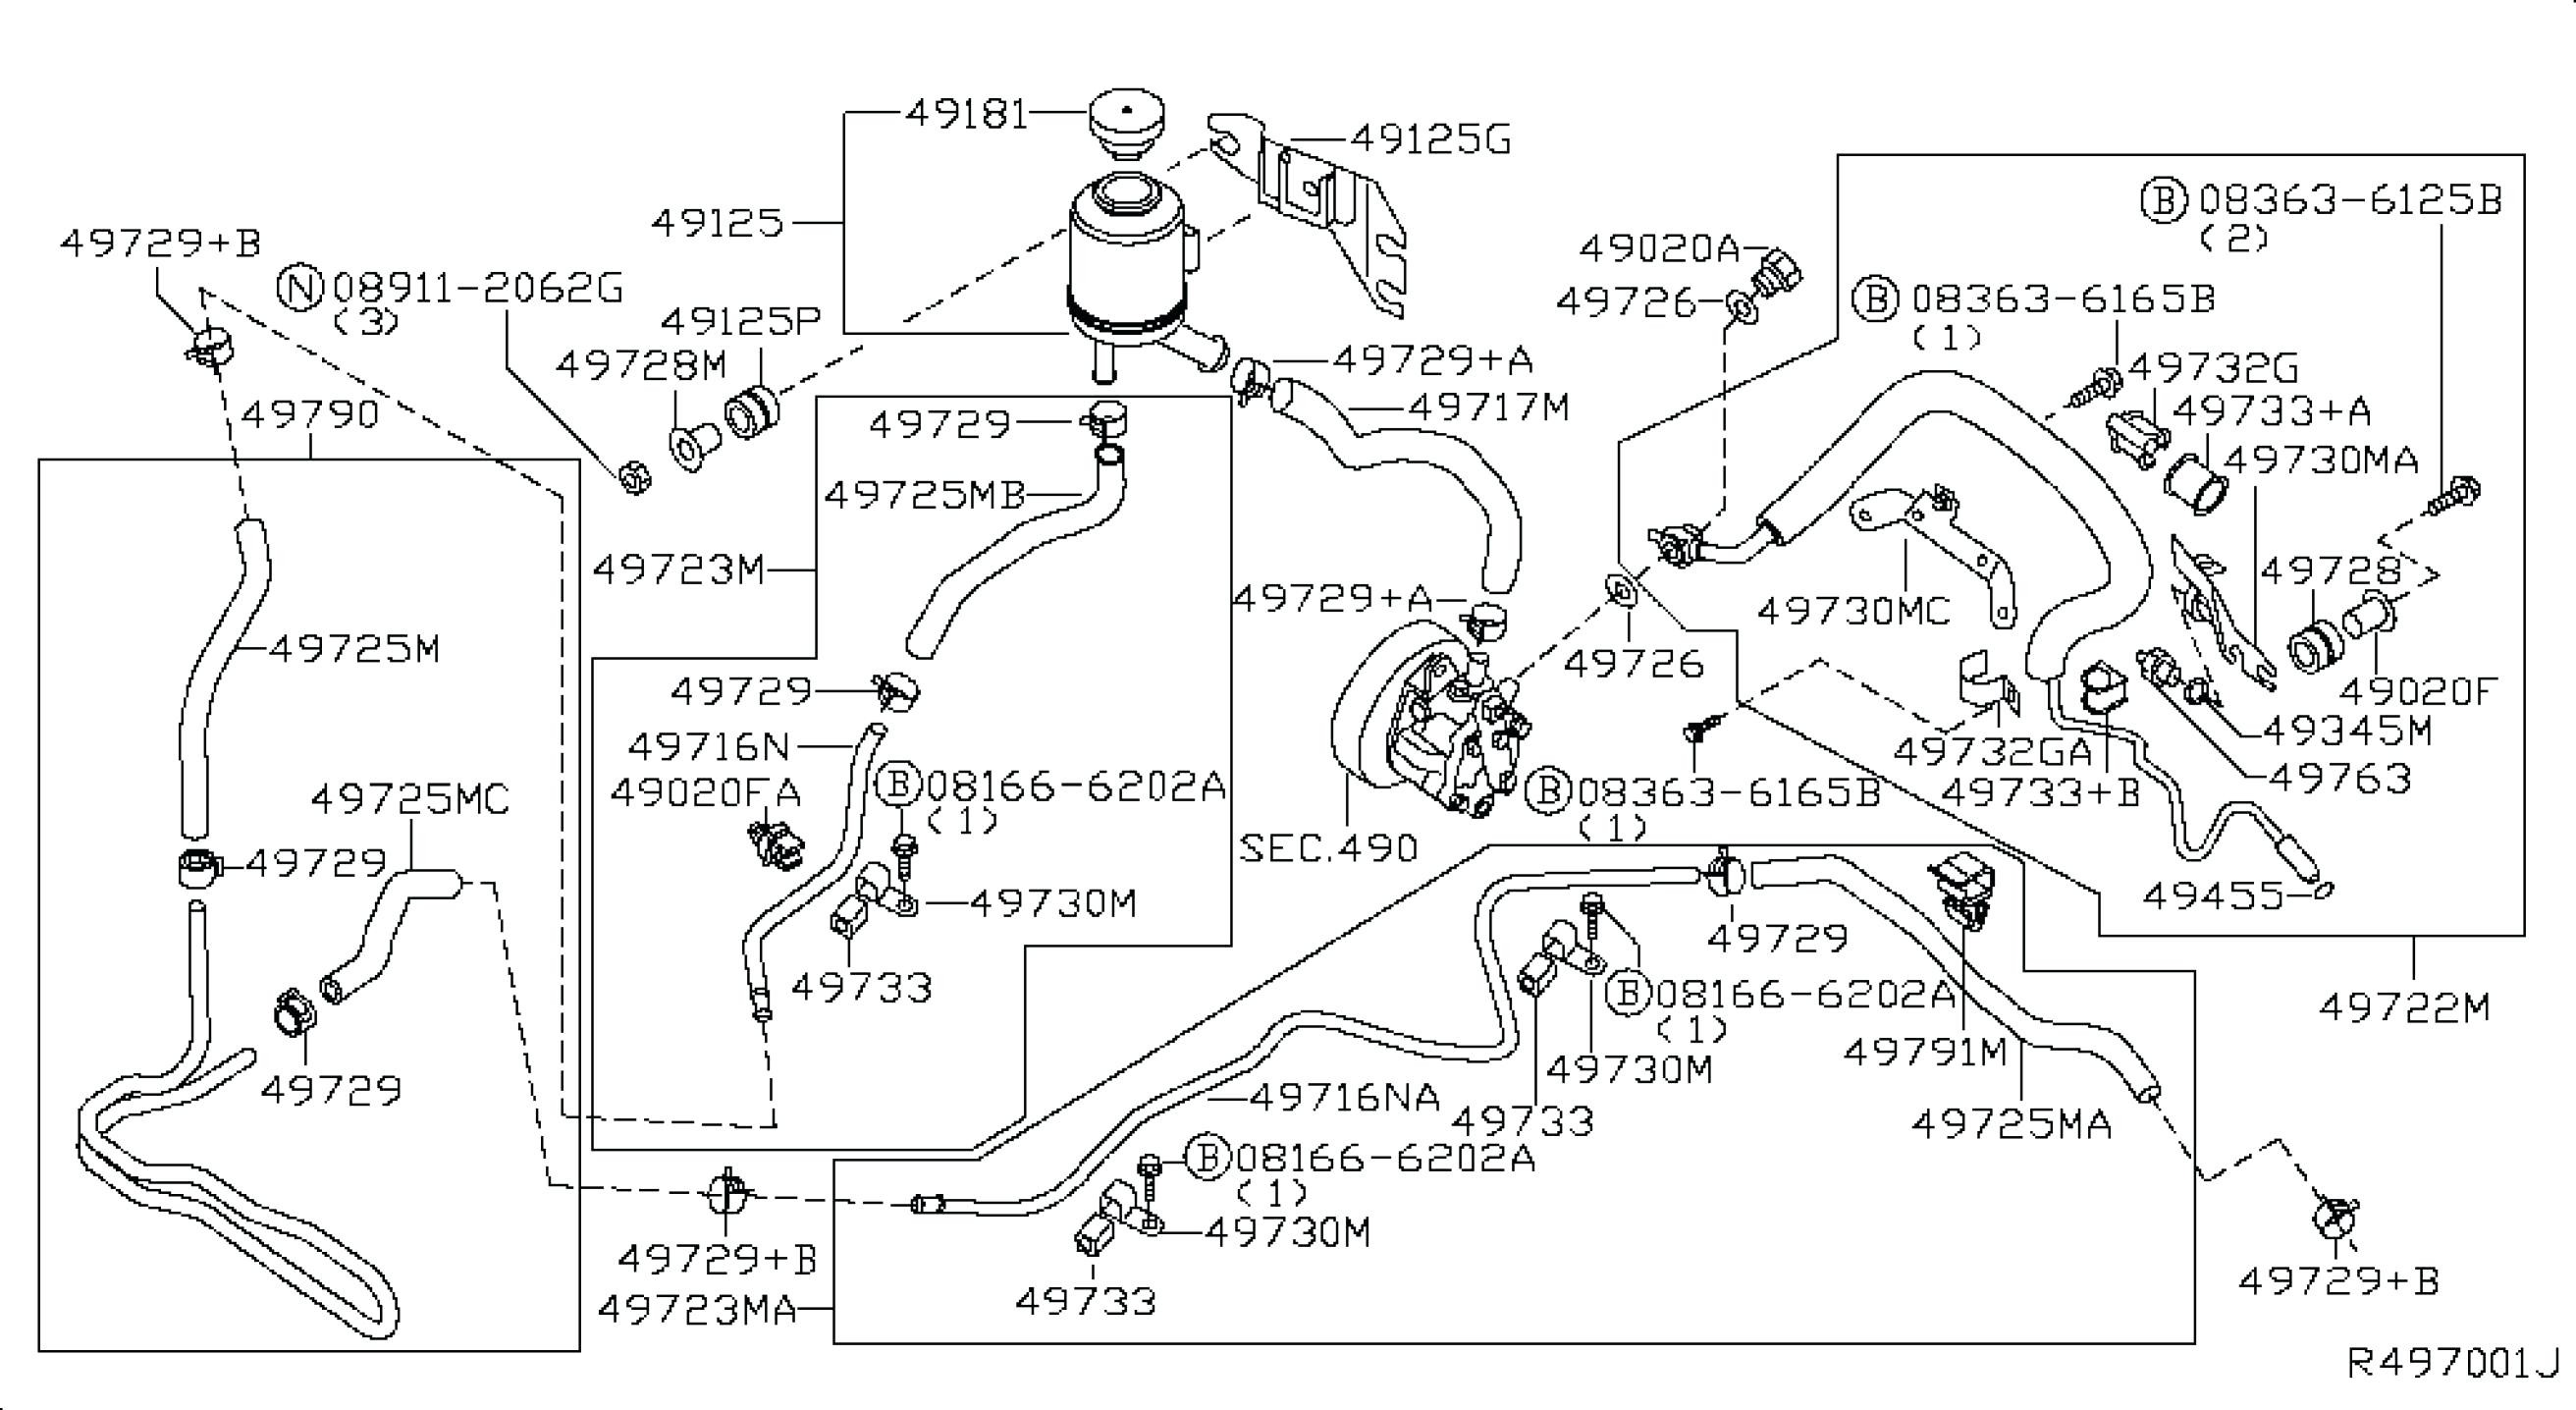 2002 subaru forester engine diagram u2022 wiring diagram for free 2003 Subaru  Forester Fuse Box Location